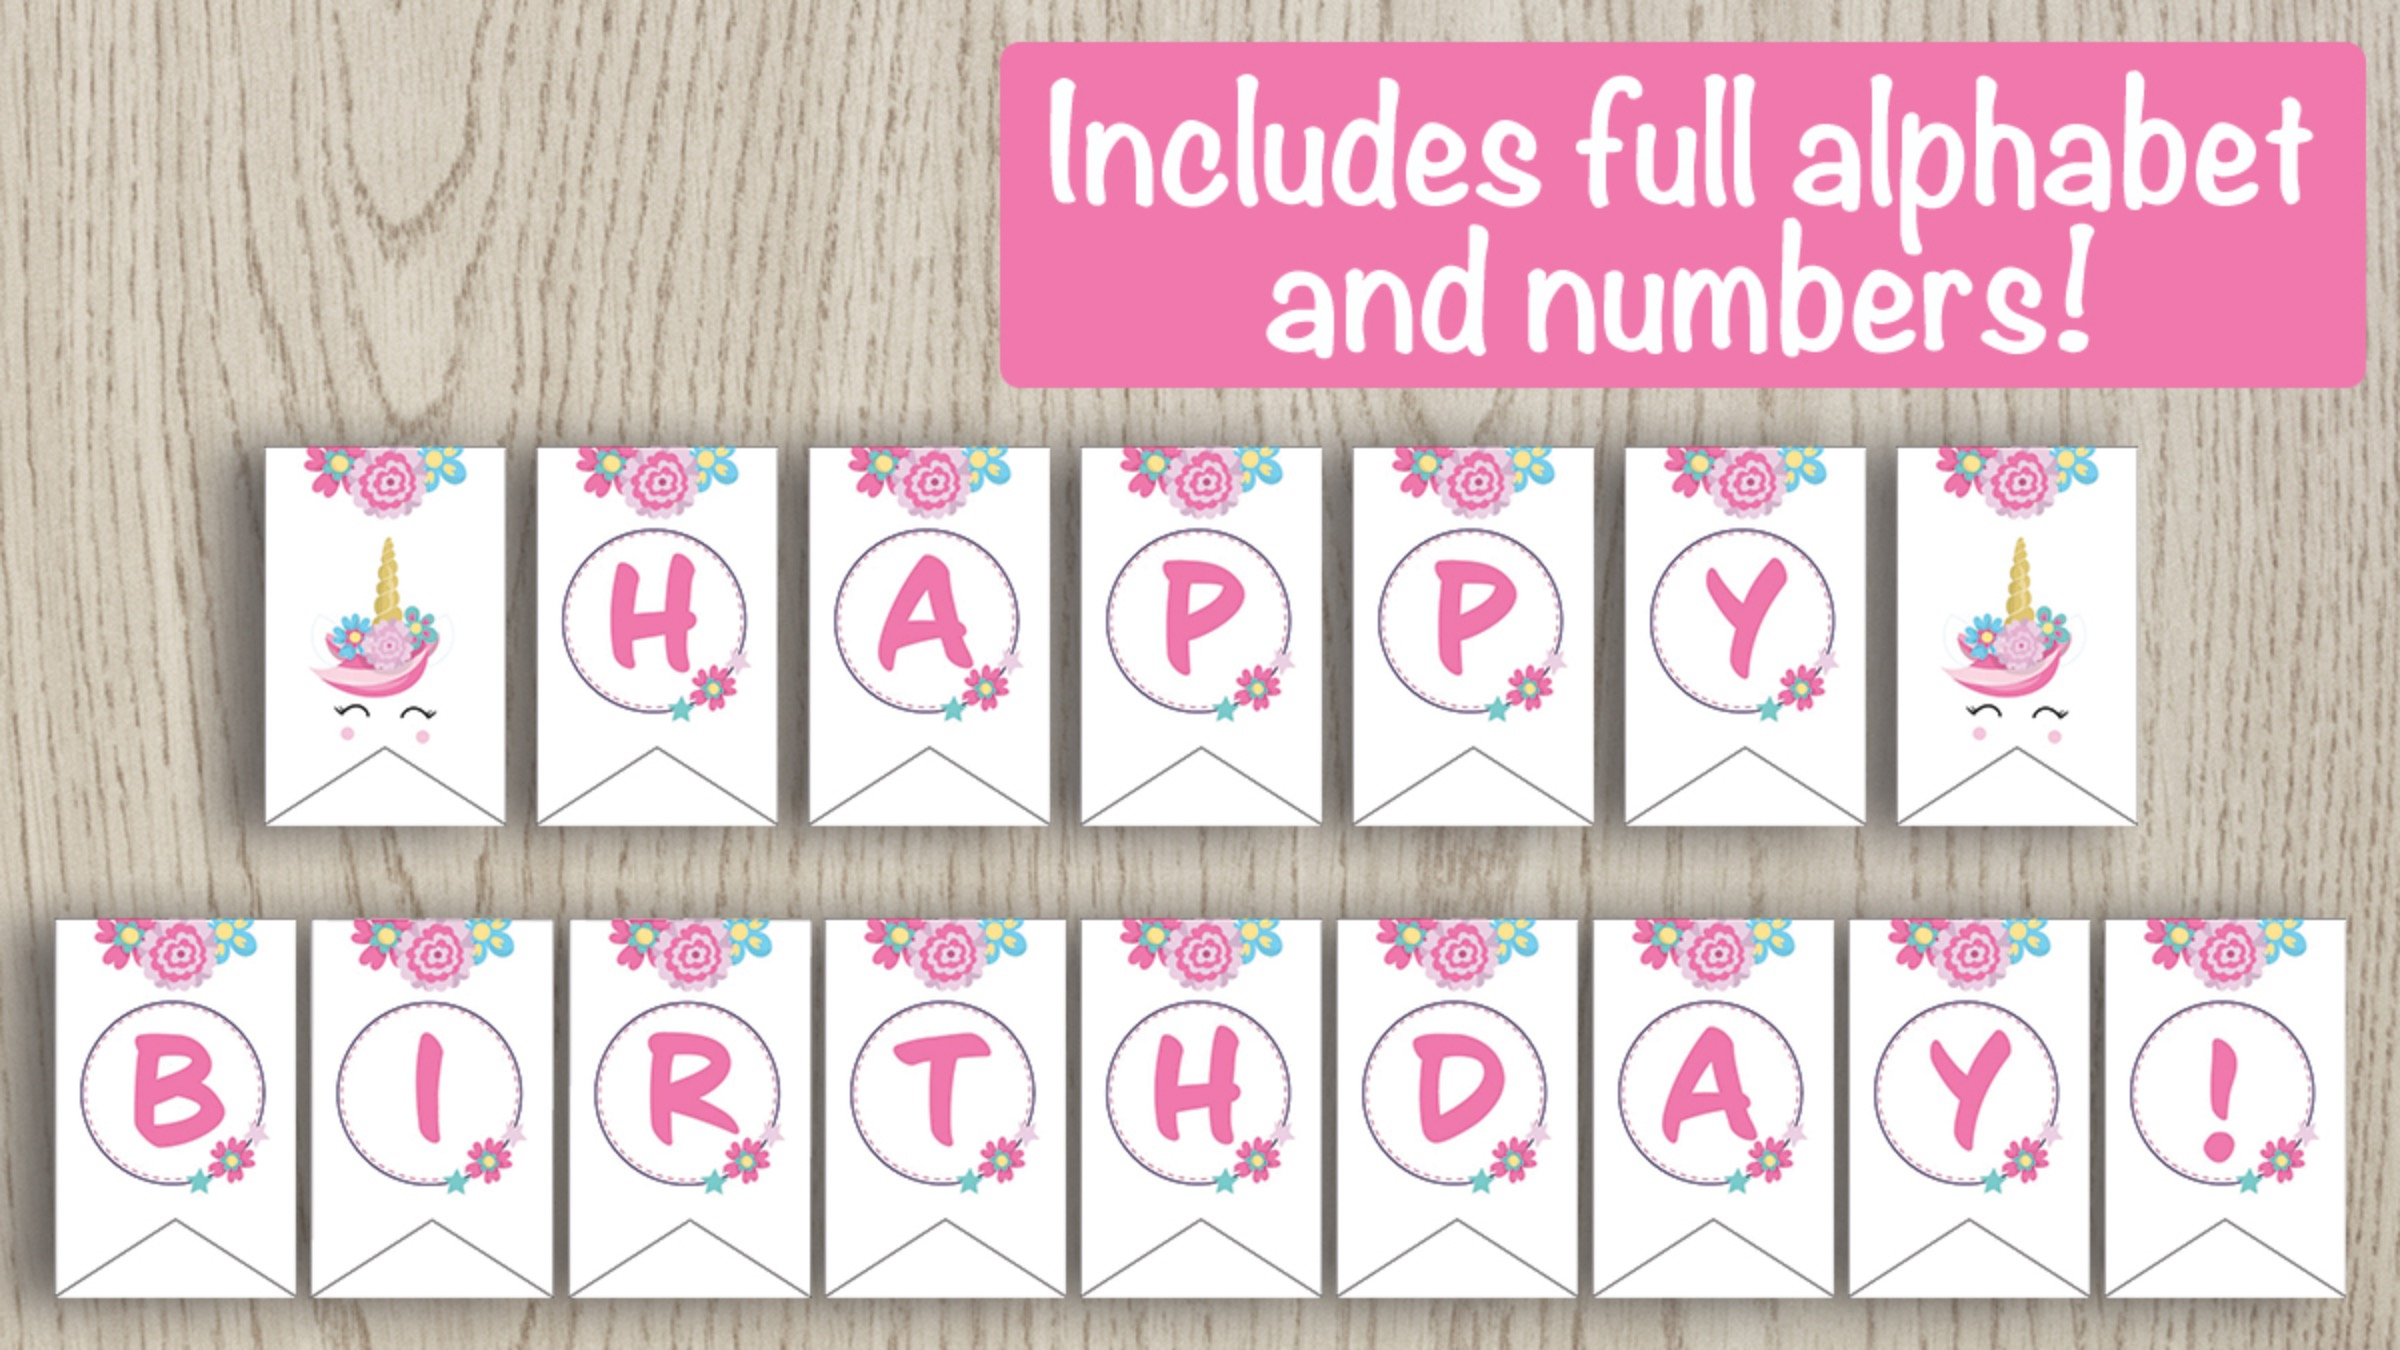 Printable Unicorn Banner - Full alphabet and numbers included!